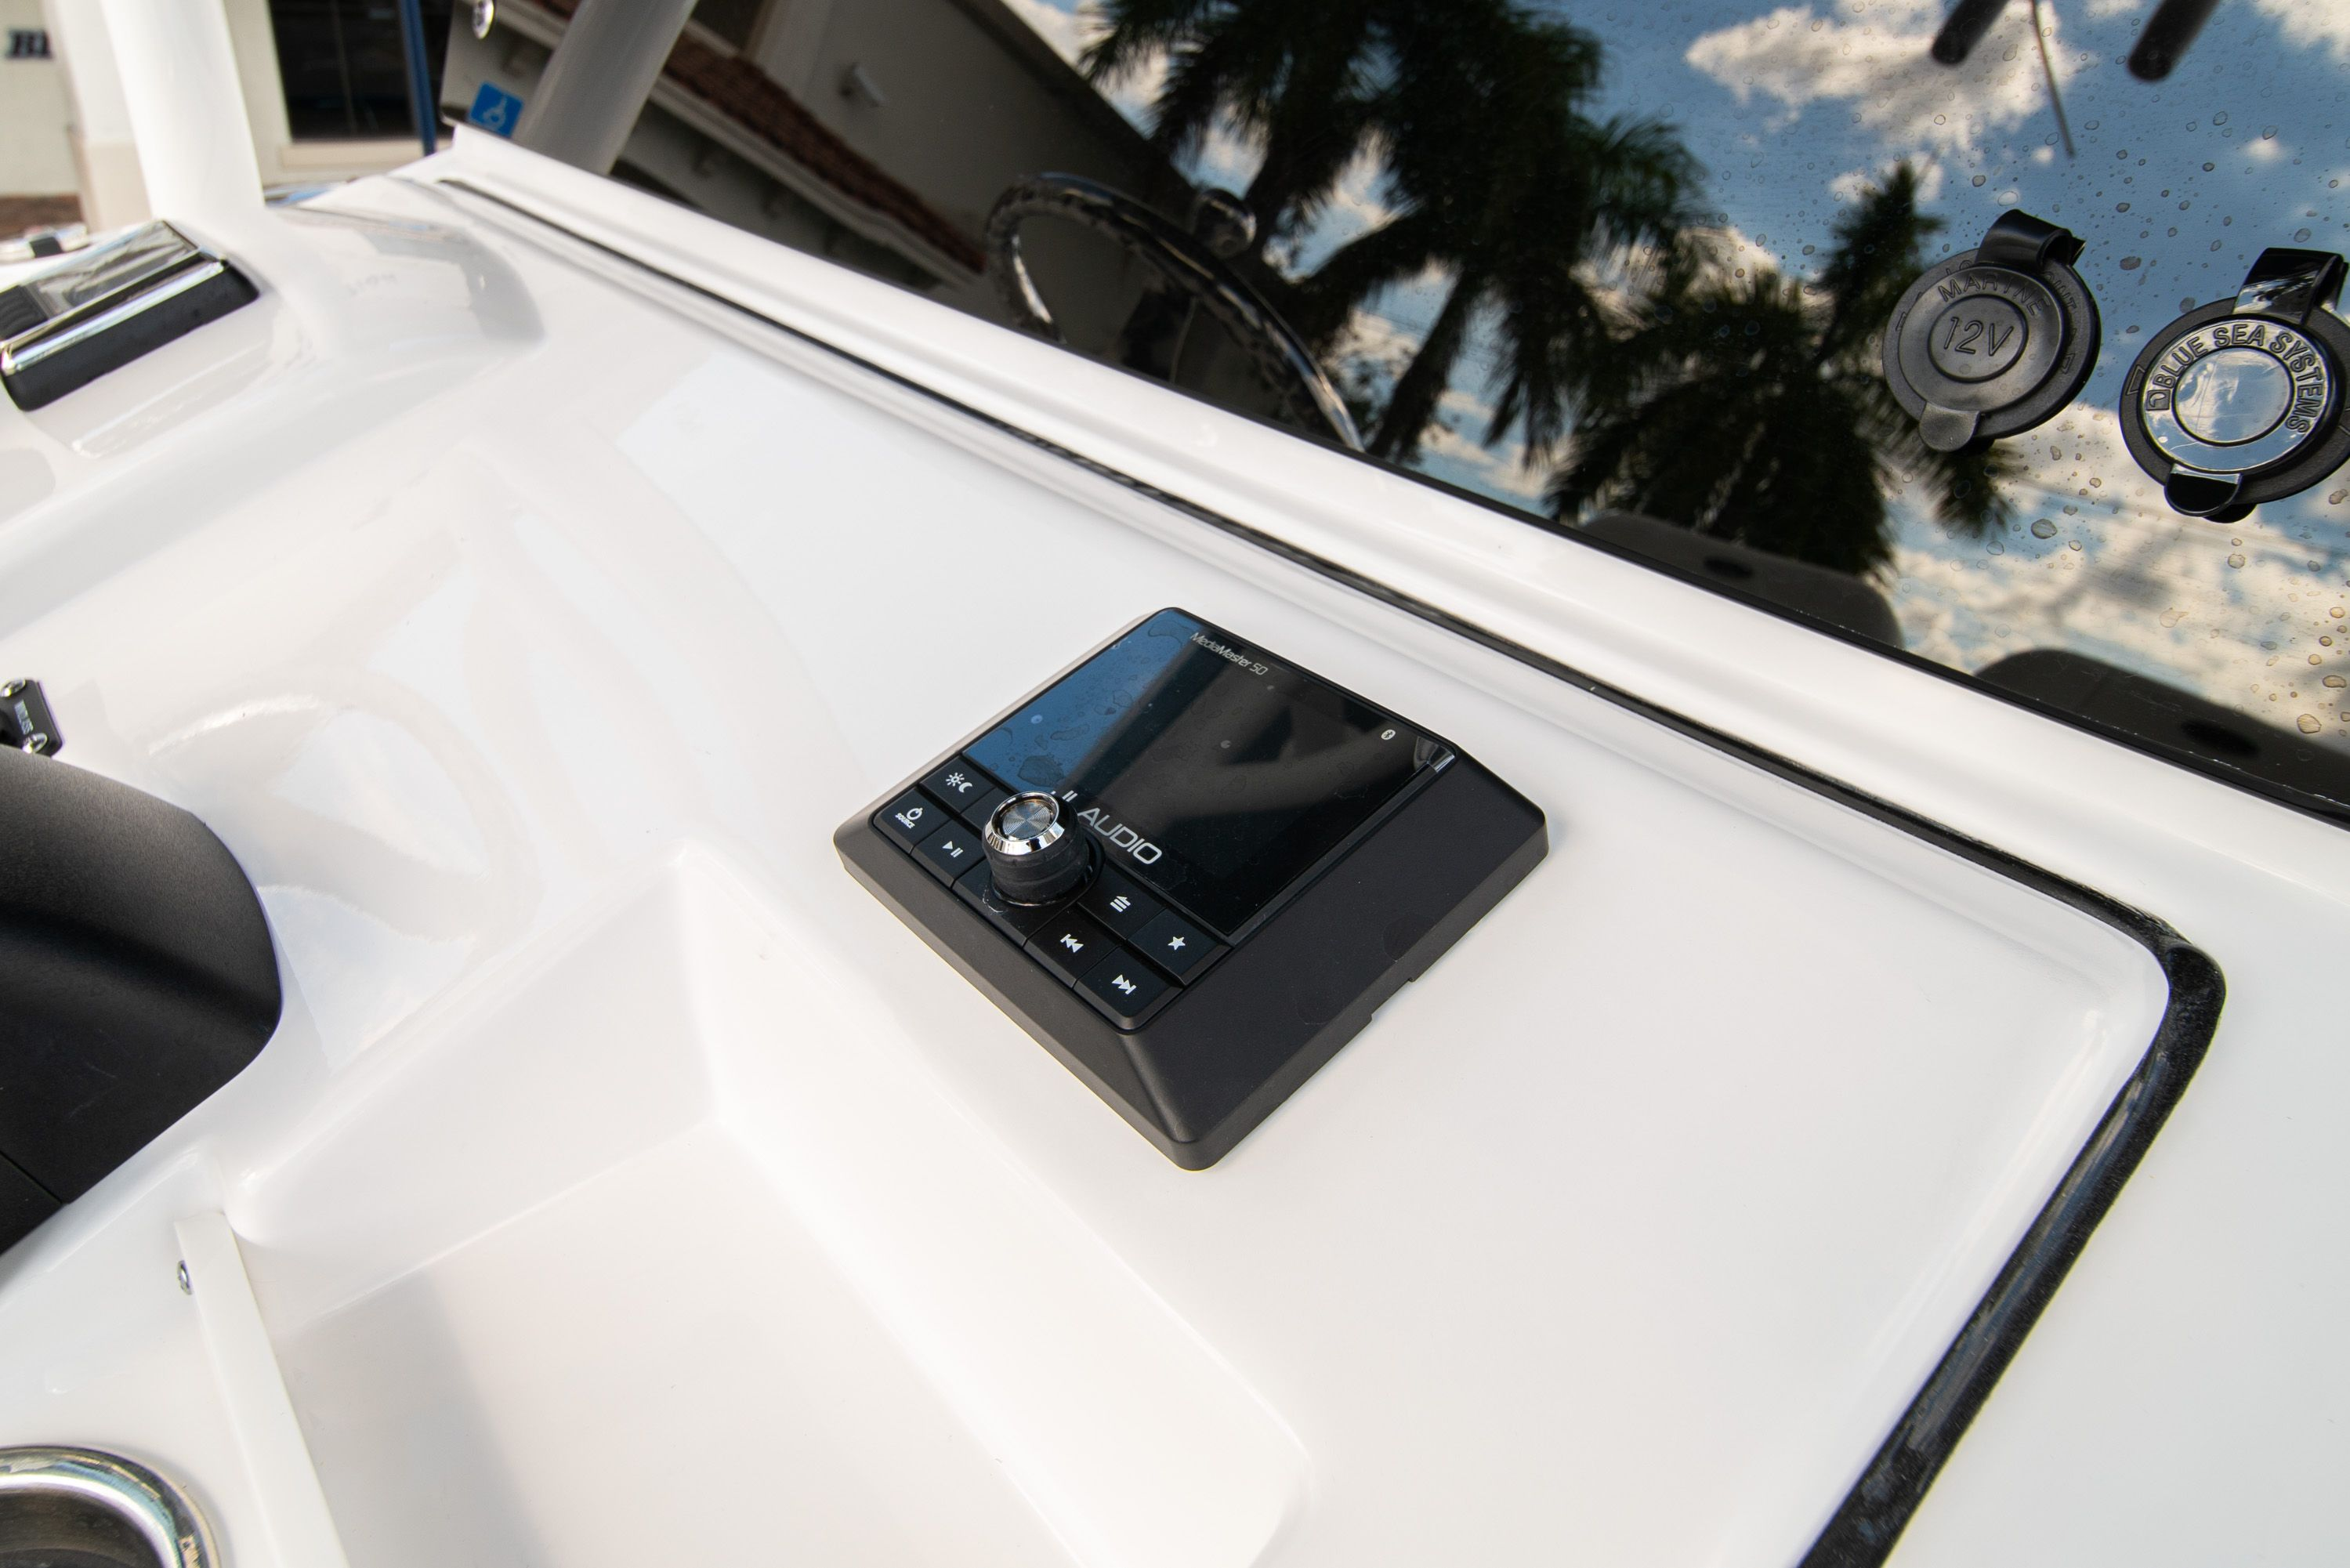 Thumbnail 26 for New 2020 Sportsman Heritage 251 Center Console boat for sale in West Palm Beach, FL